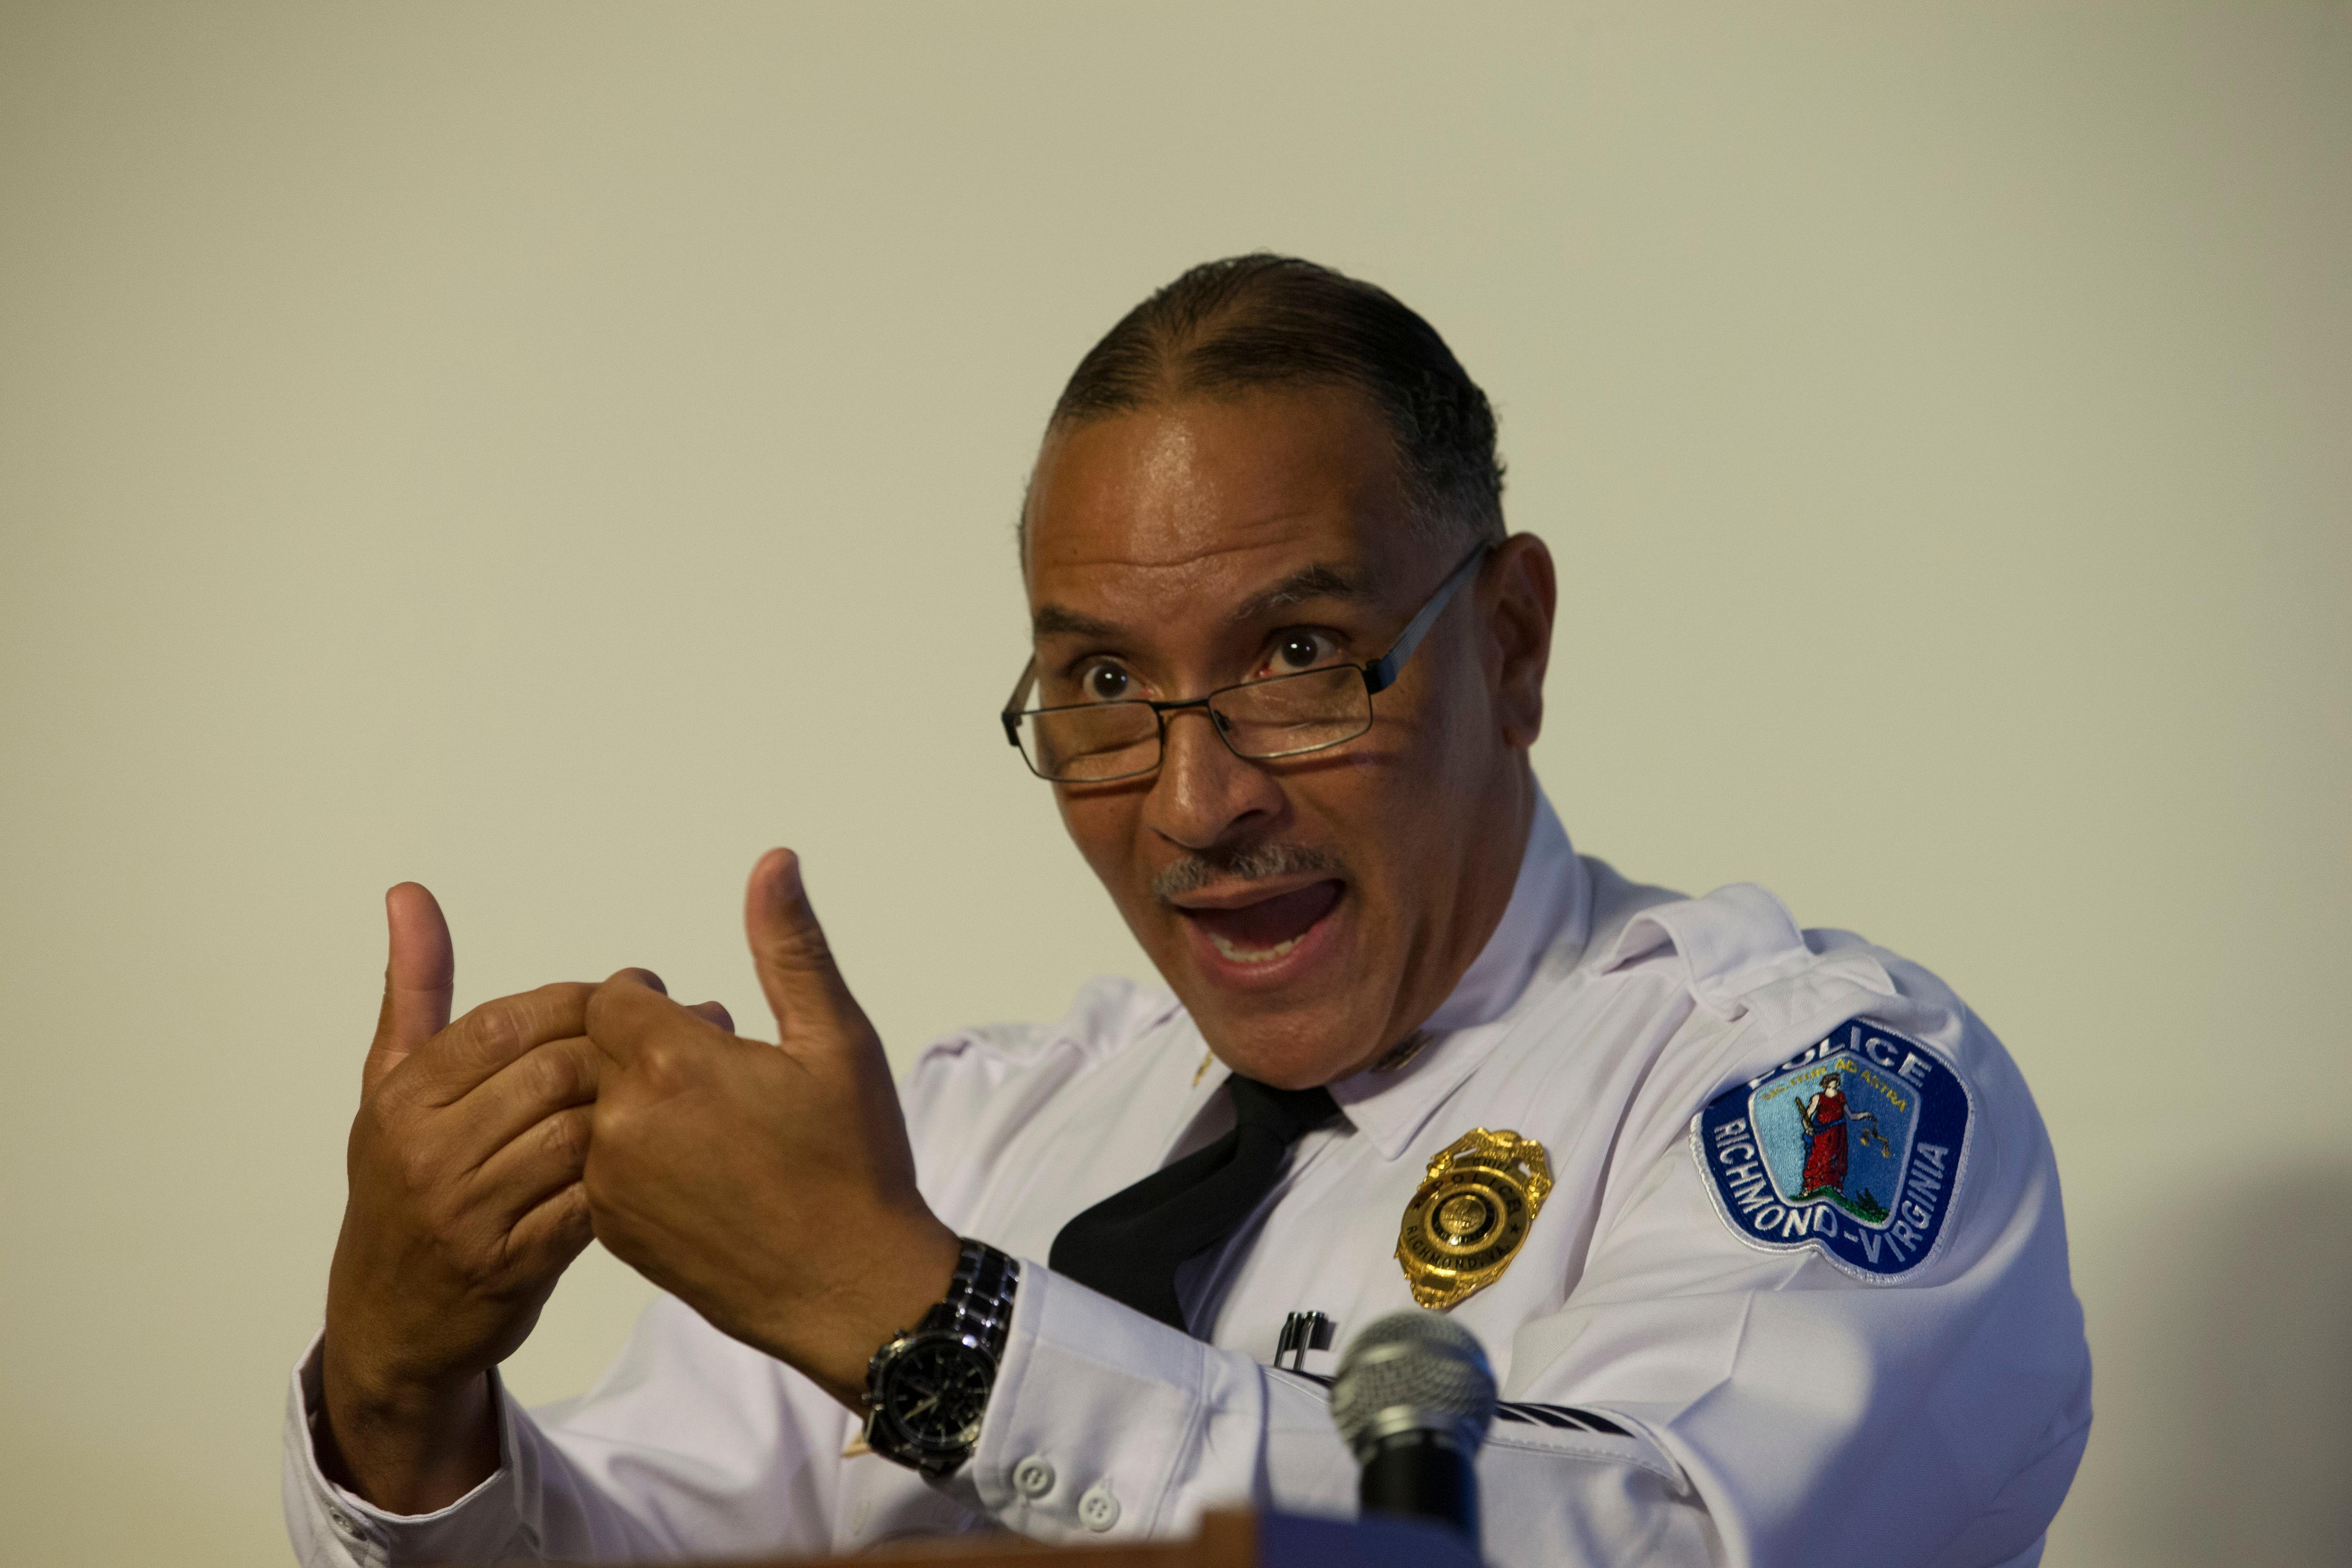 Richmond Police Chief, Alfred Durham, gestures during a news conference in Richmond, Va., Friday, May 25, 2018. Durham released the video of Marcus-David Peters' fatal shooting earlier this month. The video shows the officer first used a stun gun when Peters approached him. Police say it was not effective and the officer then shot Peters twice in the abdomen. (AP Photo/Steve Helber)